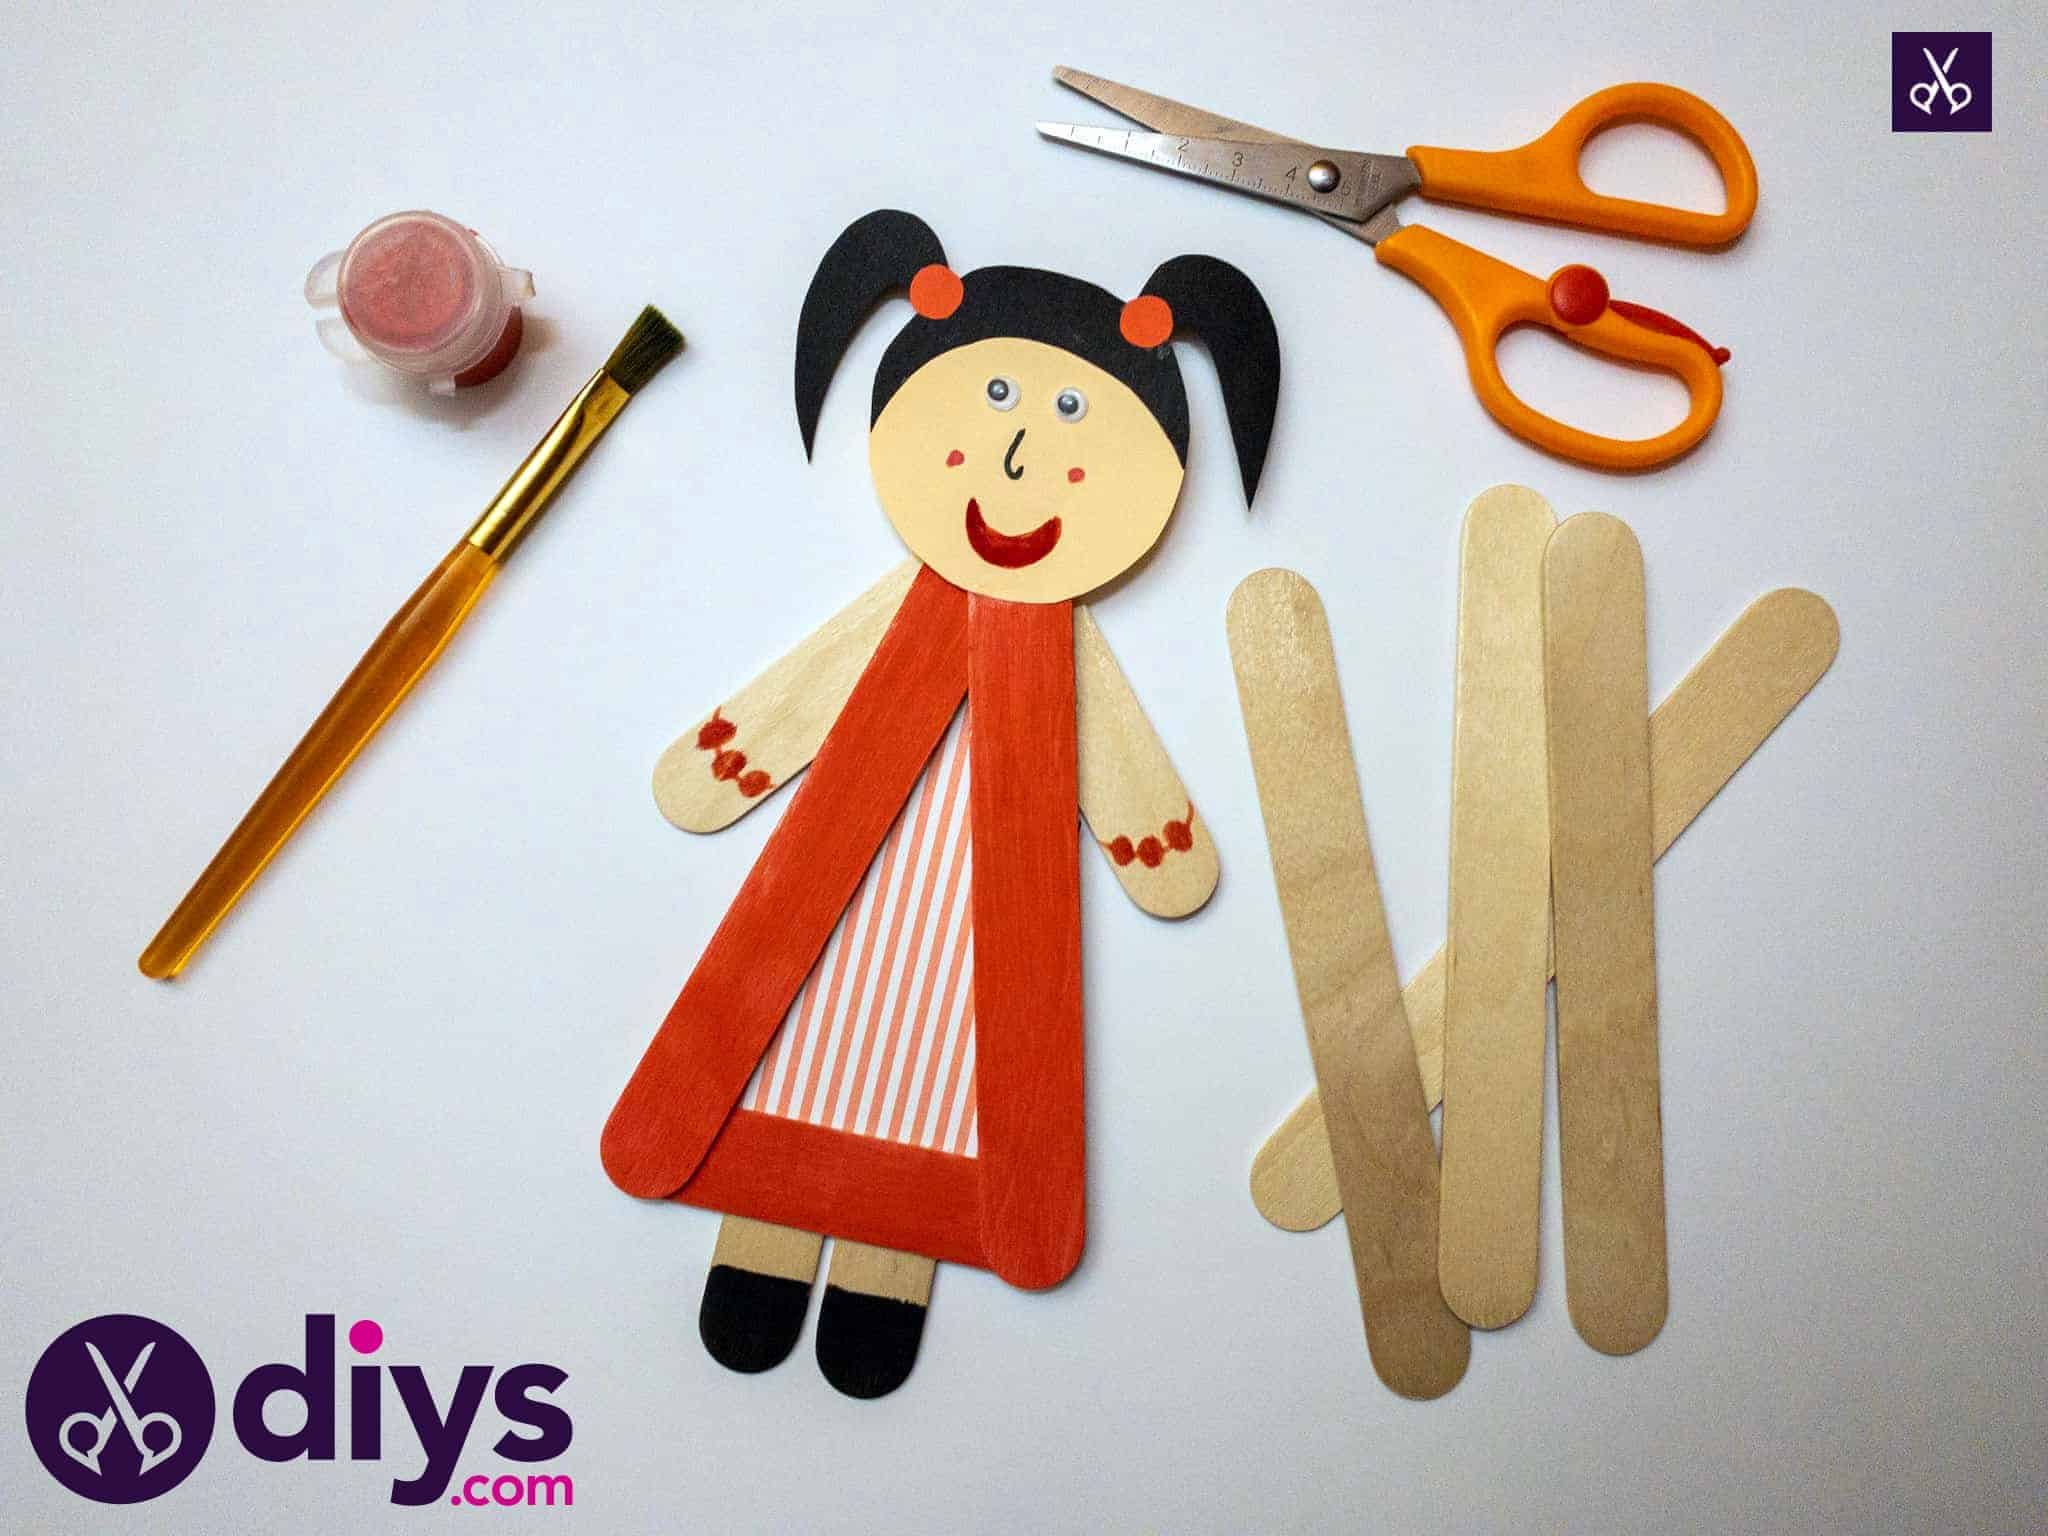 How to make a popsicle stick puppet